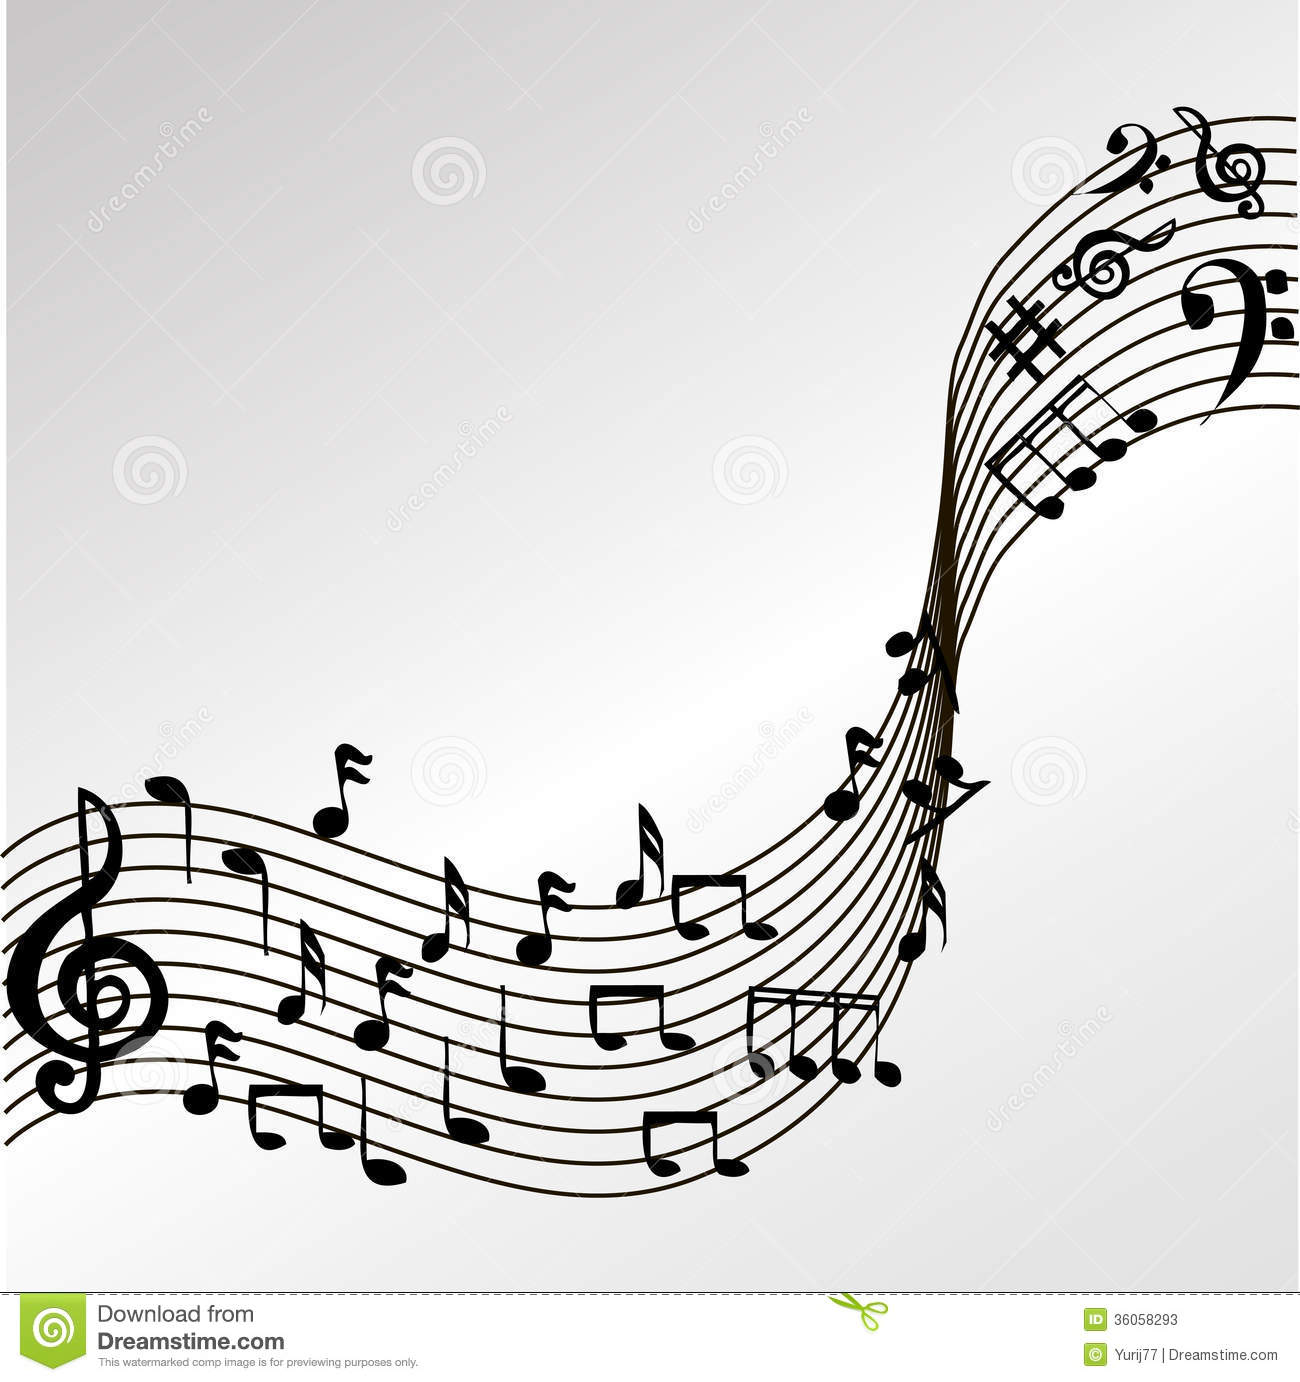 Wavy Music Notes Vector